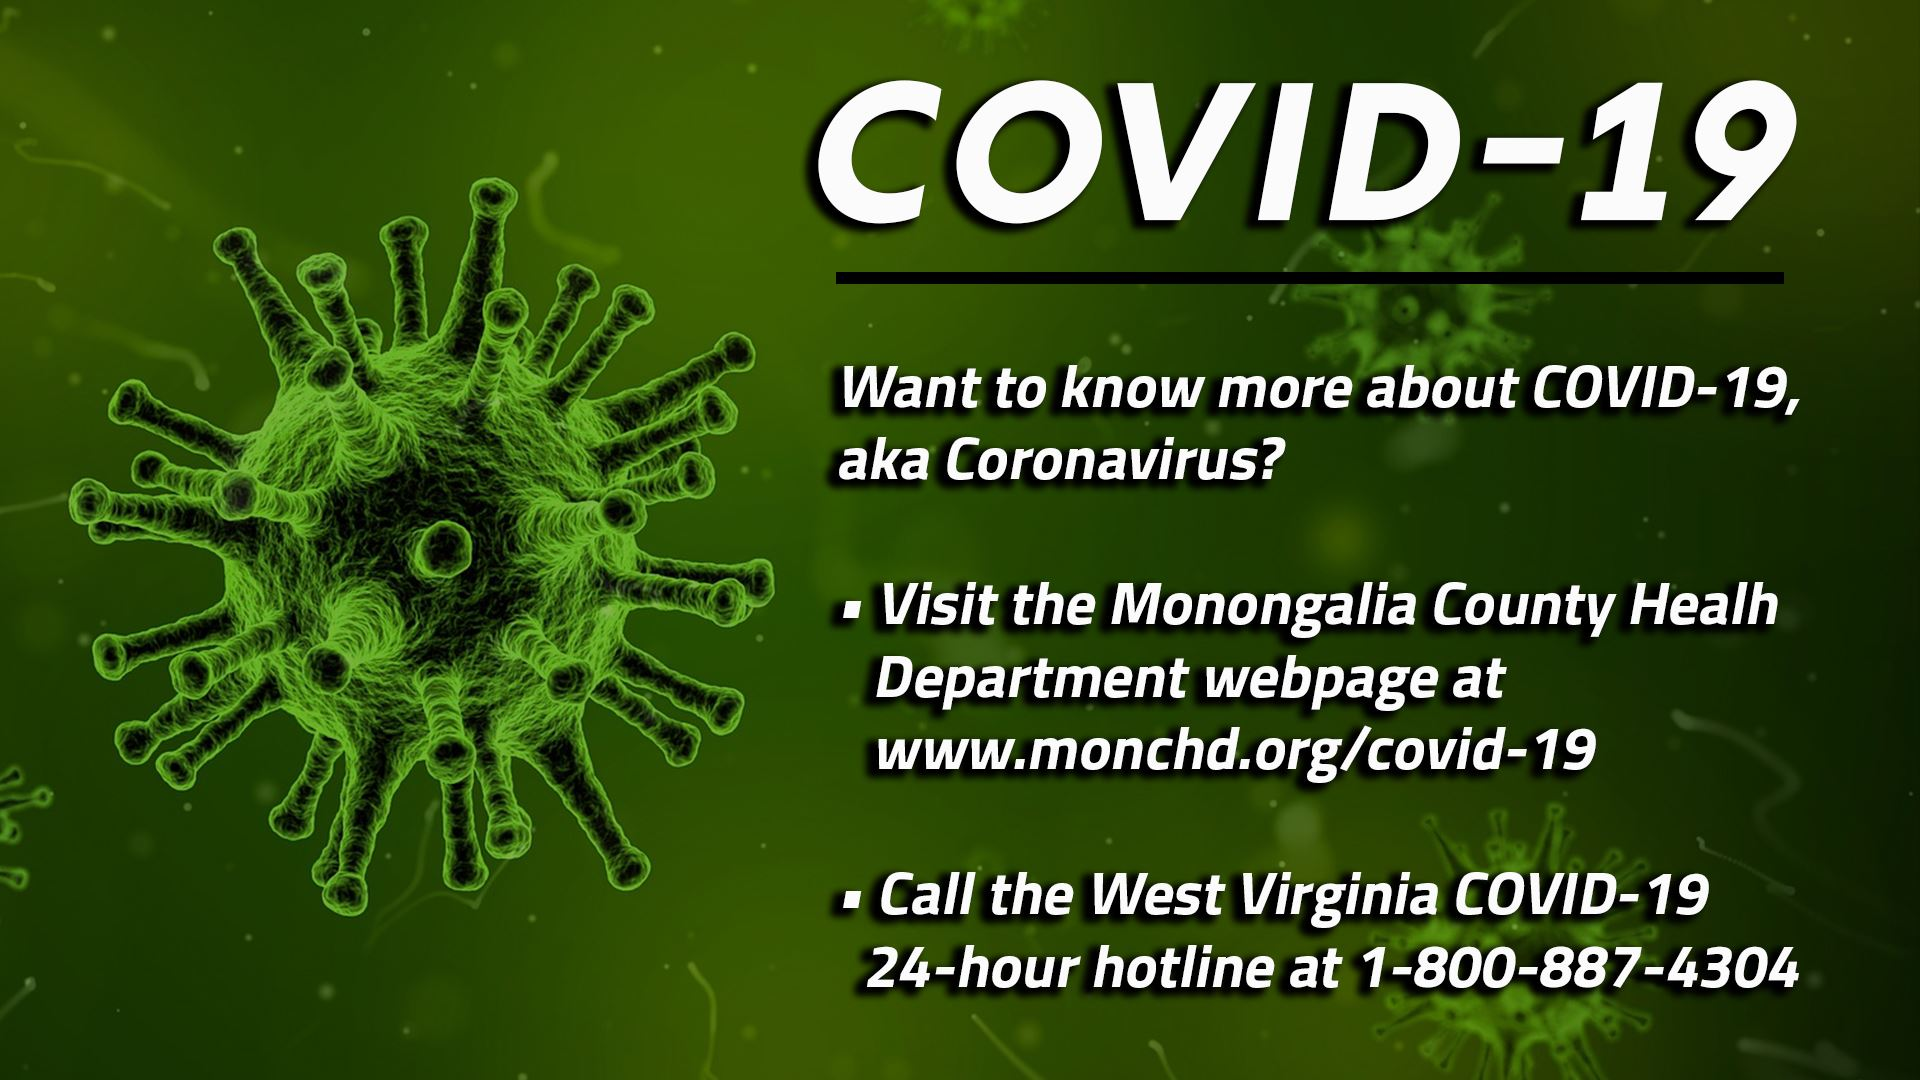 An image referring the public to the Monongalia County Health Department Covid-19 webpage at www.mon